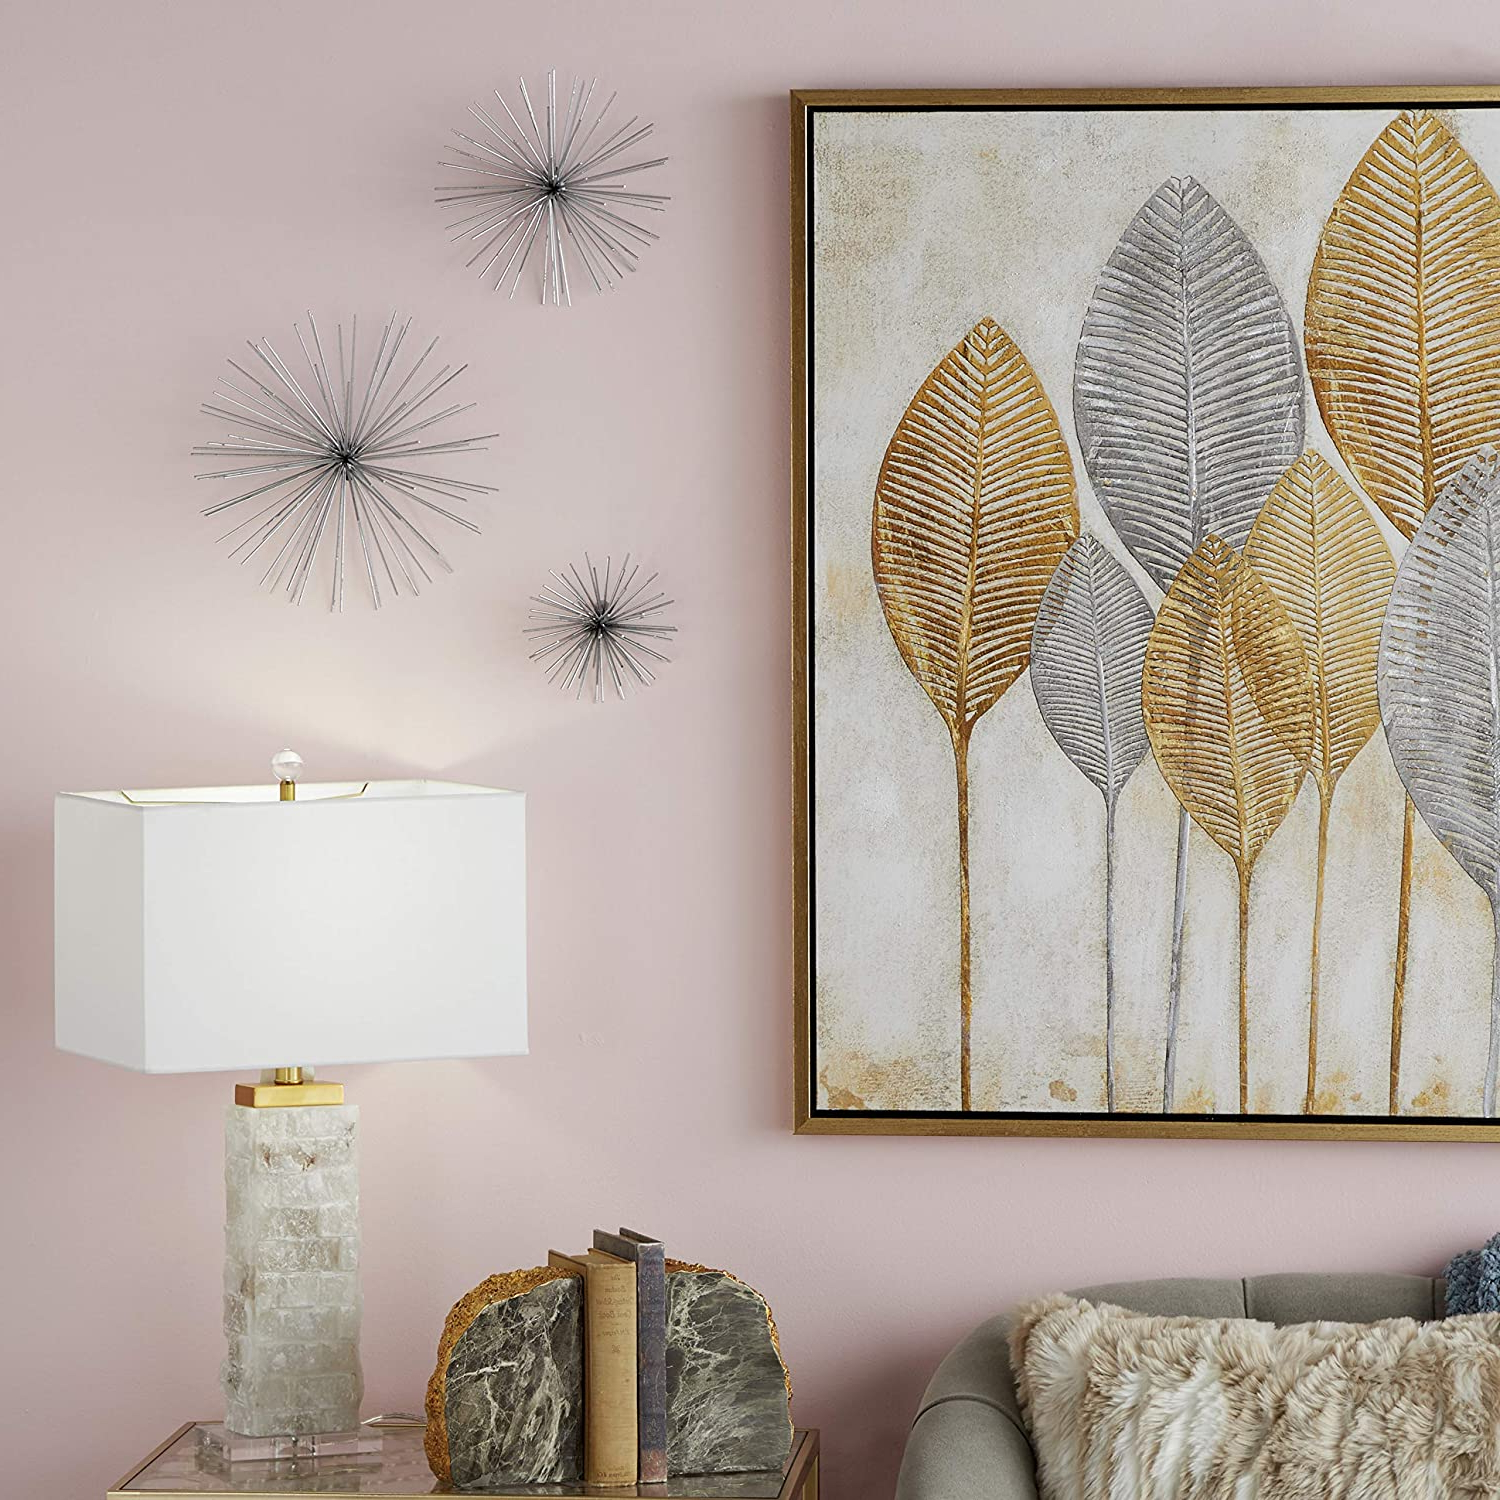 Current Cosmolivingcosmopolitan 50389 Contemporary Style 3d Round Silver Metal Starburst Wall Decor Sculptures (View 6 of 20)